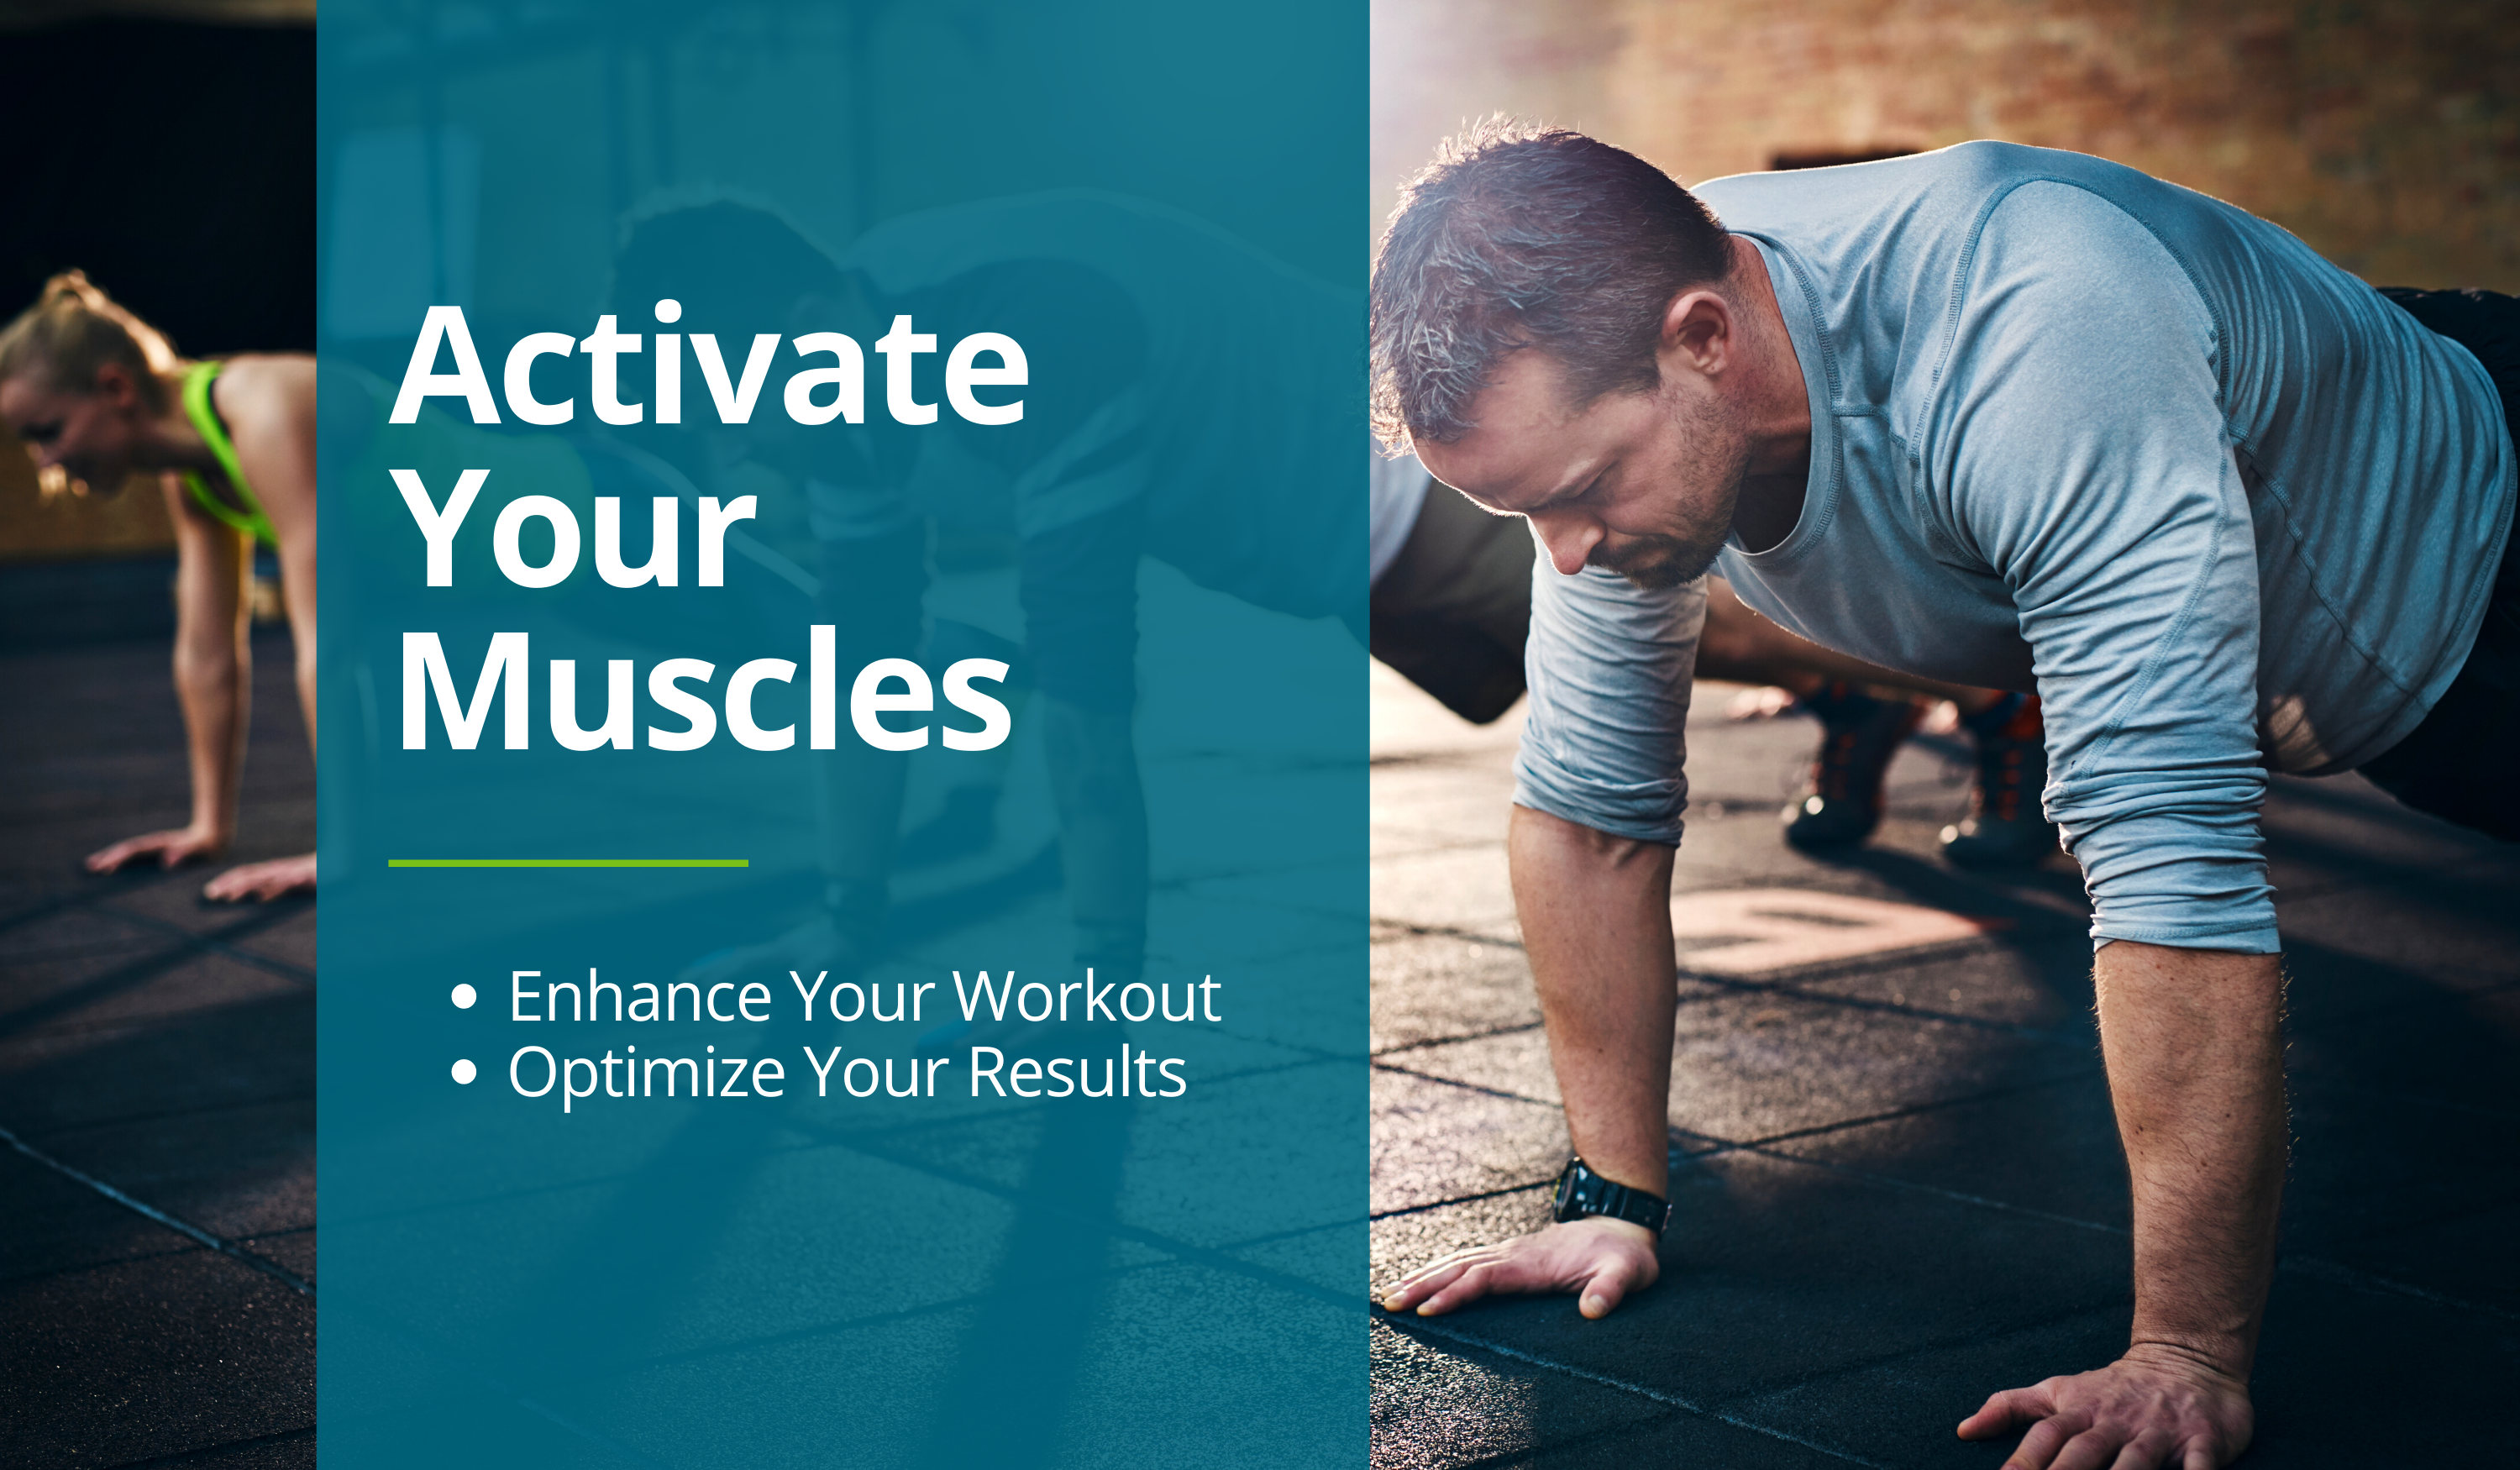 Man demonstrates how to do a push up to activate your muscles before a workout.